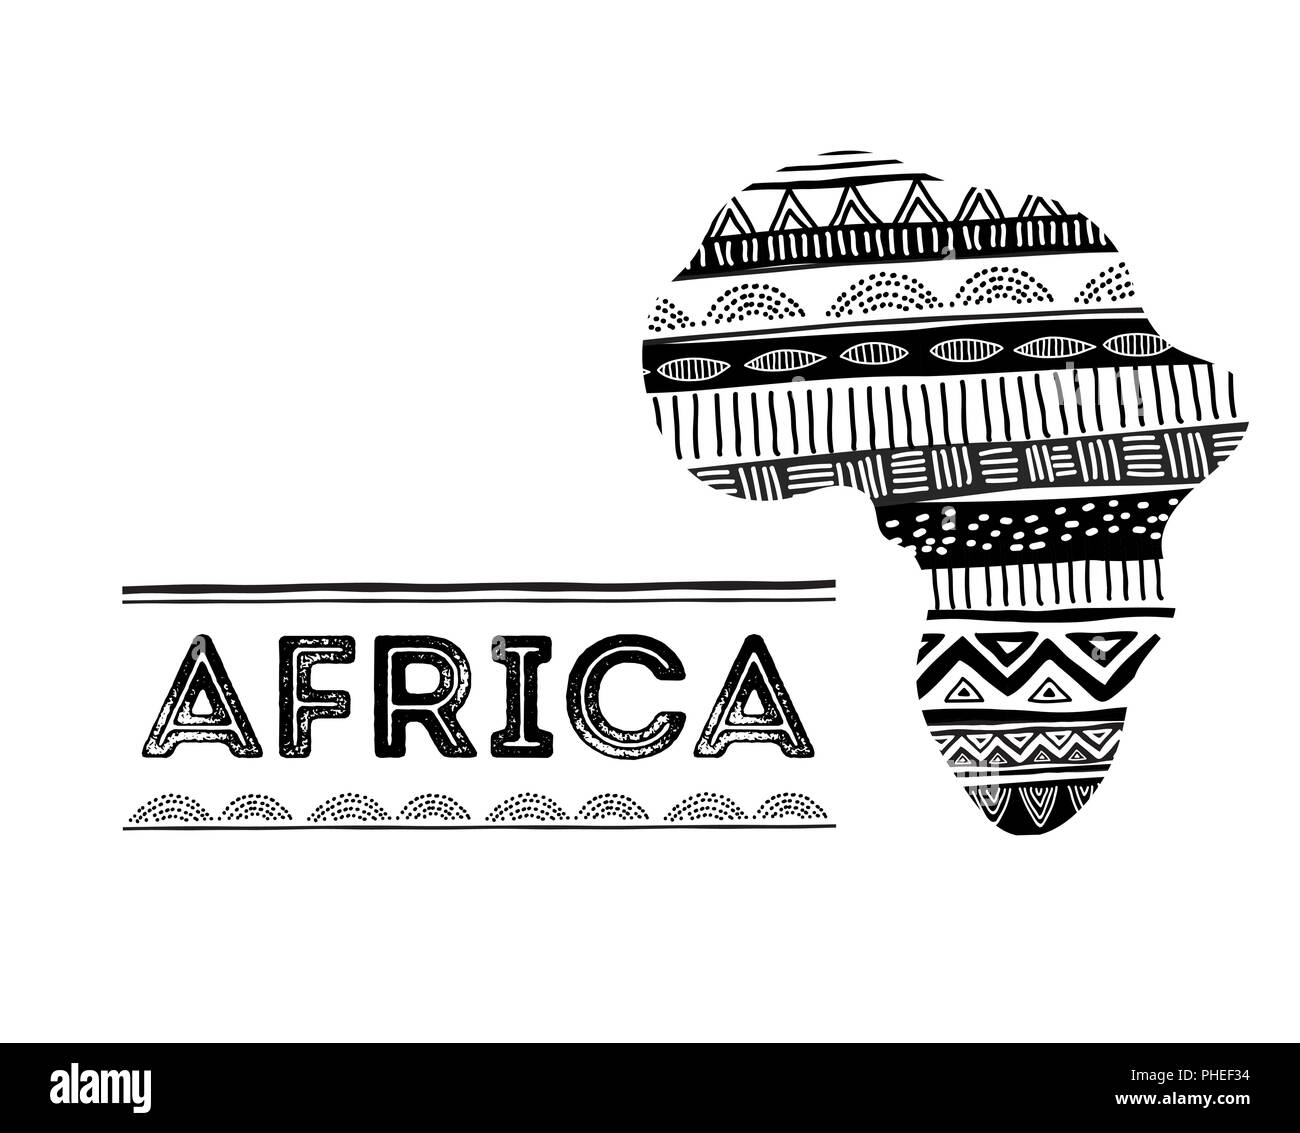 African map silhouette with tribal traditional grunge pattern concept design stock image